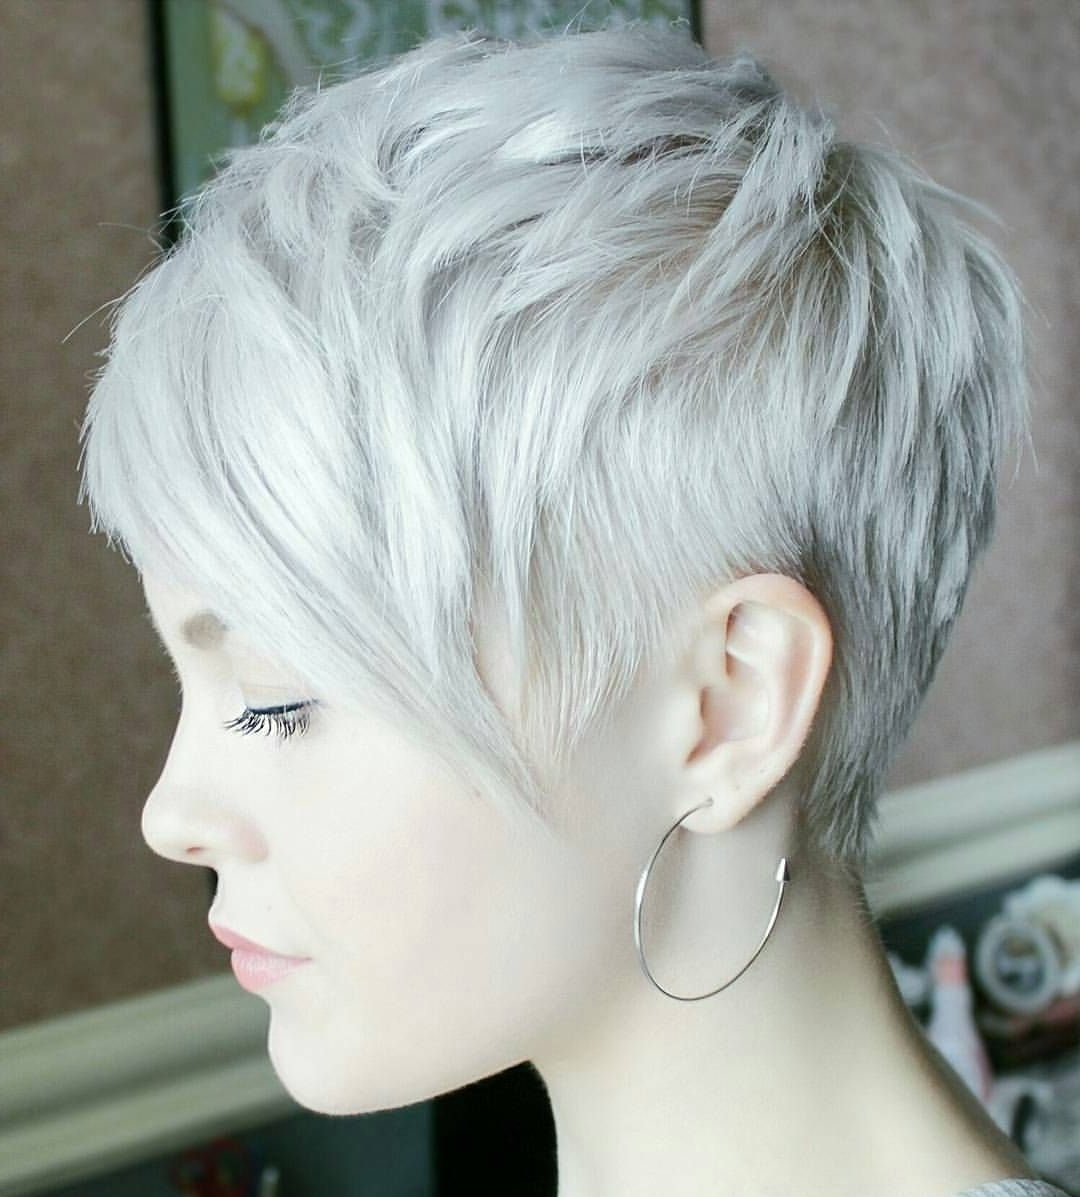 Most Recently Released Two Tone Pixie Hairstyles Inside 50 Trendsetting Short And Long Pixie Haircut Styles — Cutest Of Them (View 12 of 20)